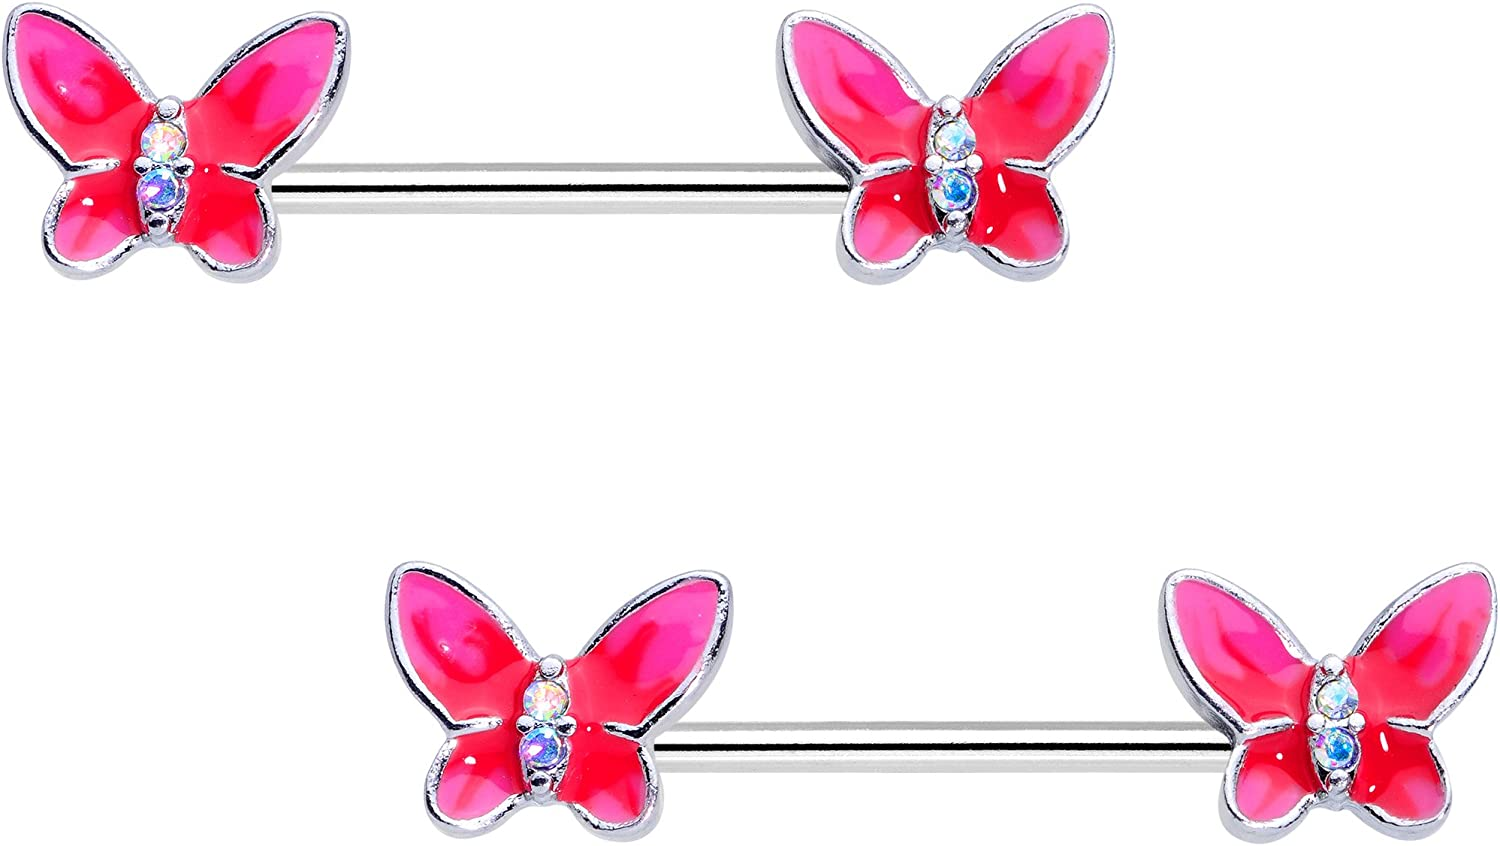 Body Candy Steel Aurora Accent Pink Butterfly Beauty Barbell Nipple Ring Set of 2 14 Gauge 3/8